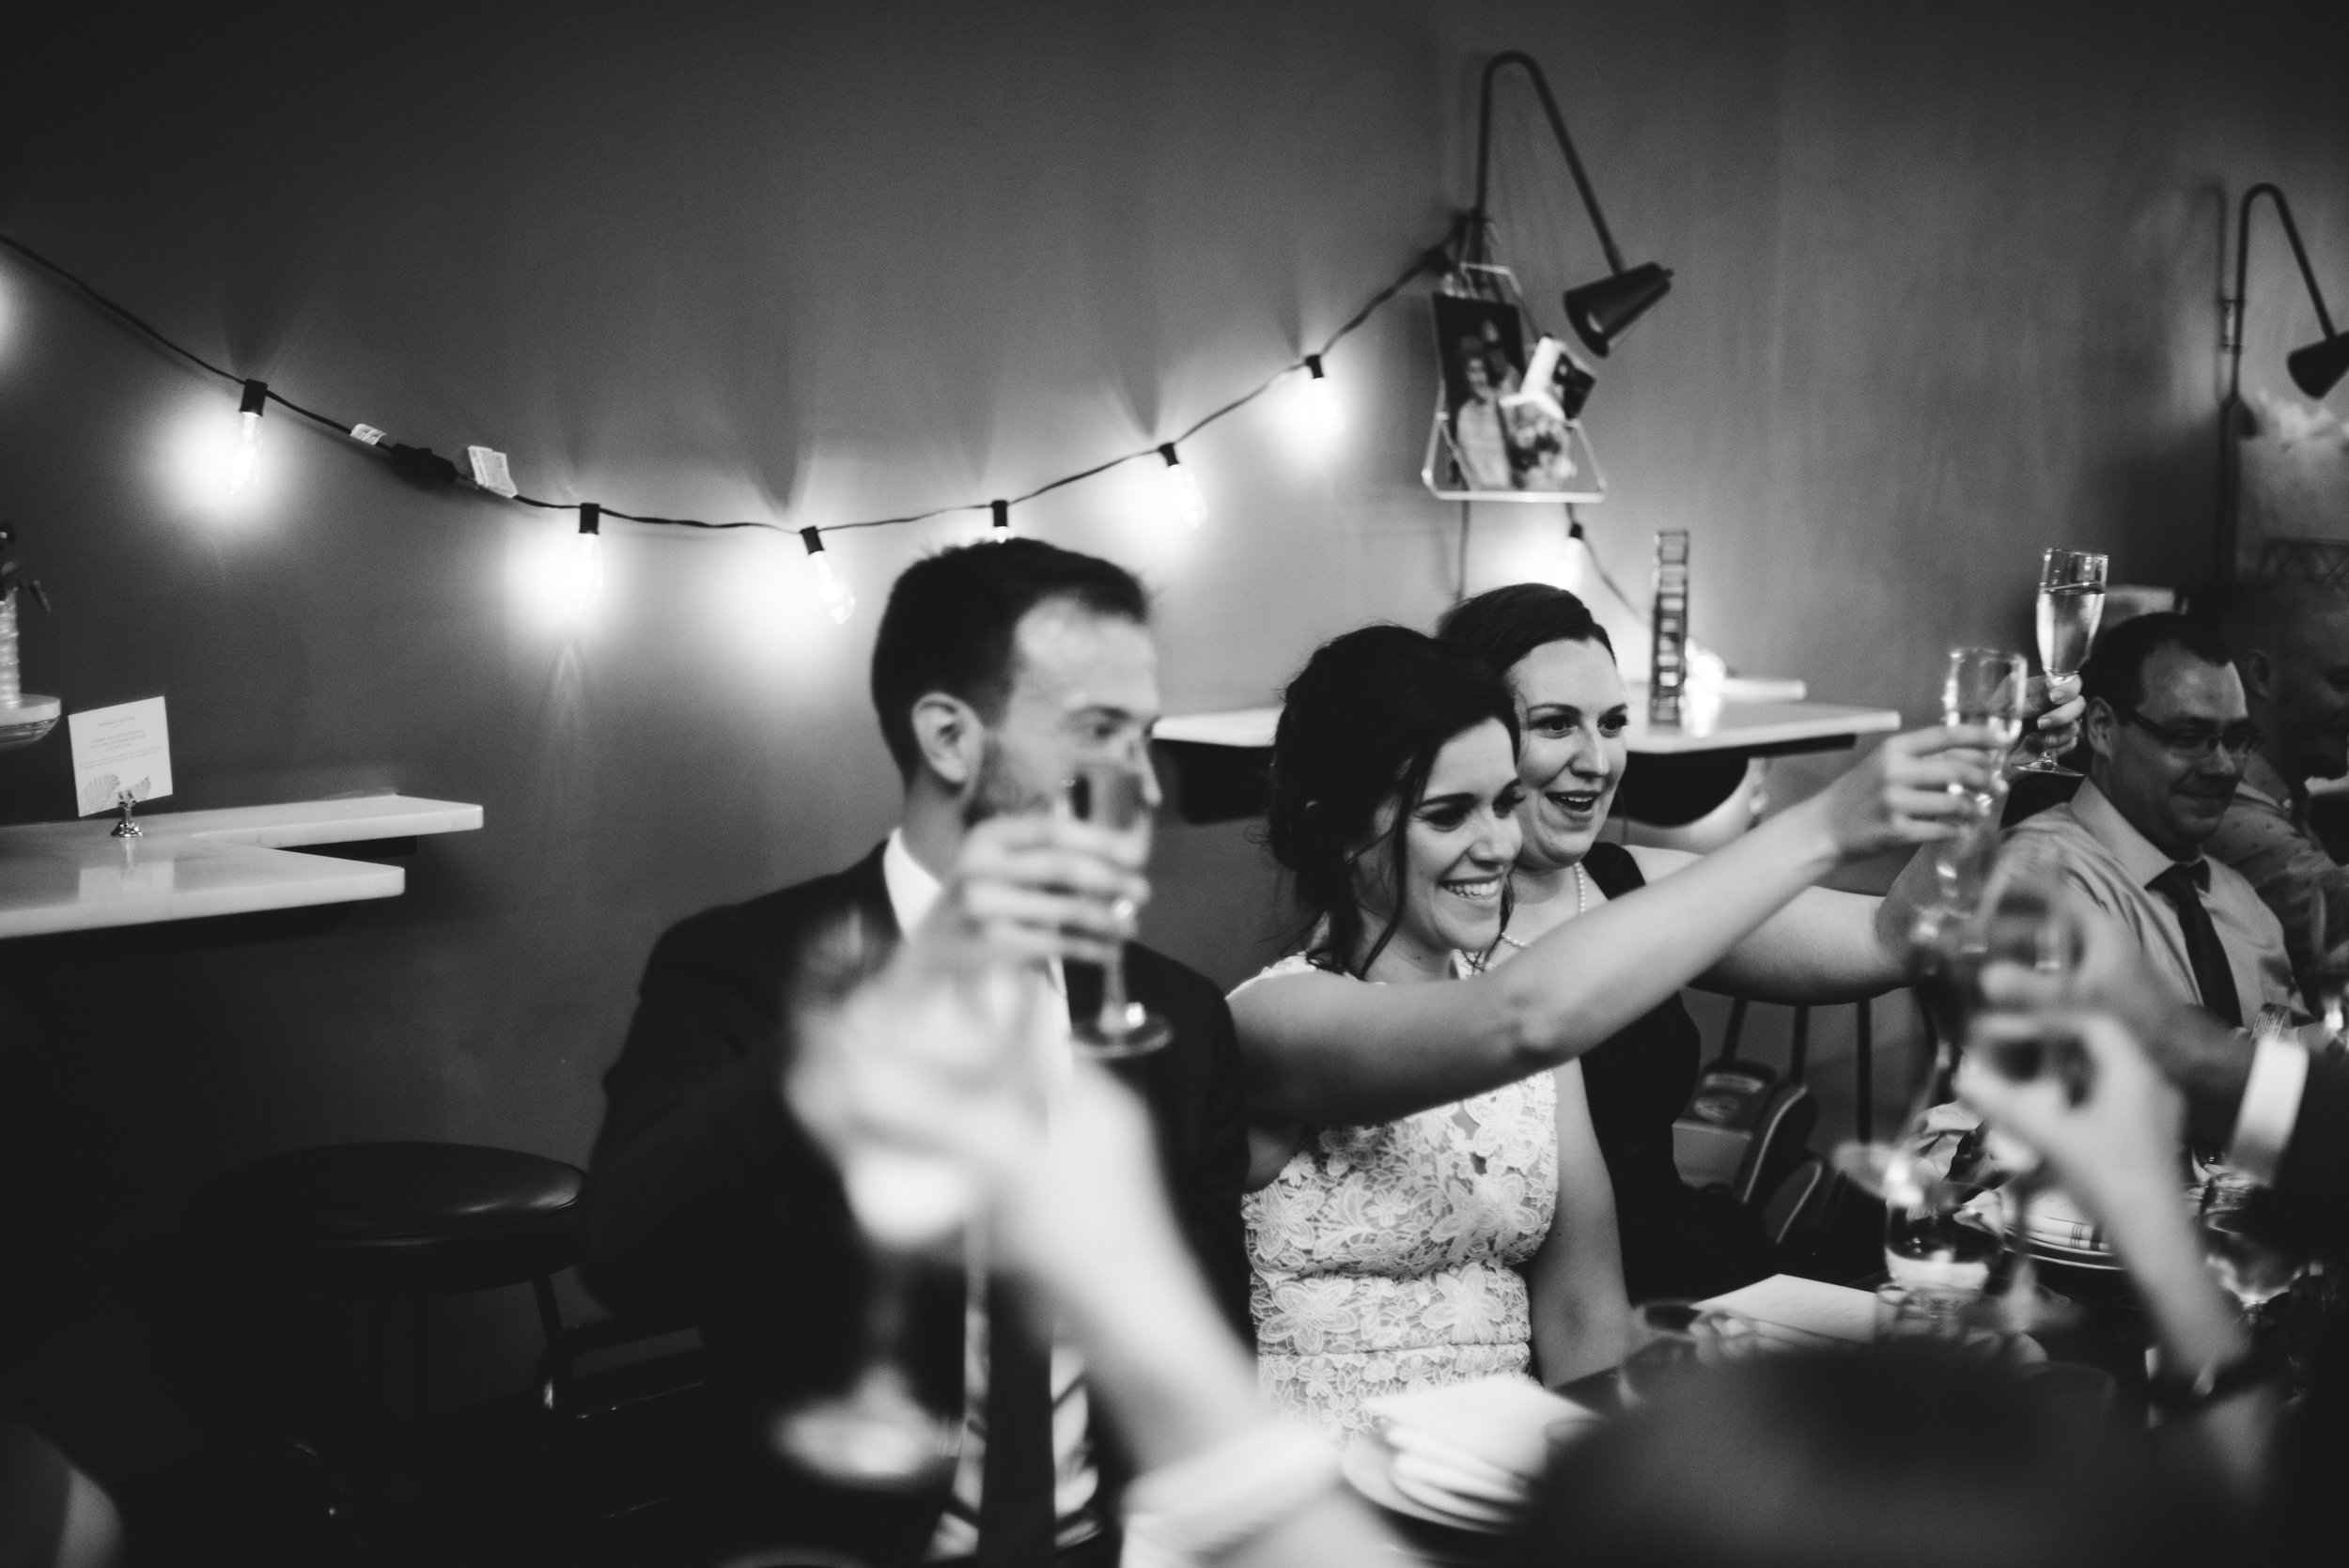 AMANDA & MATT - LE FANFARE NYC - INTIMATE WEDDING PHOTOGRAPHER by CHI-CHI ARI-581.jpg